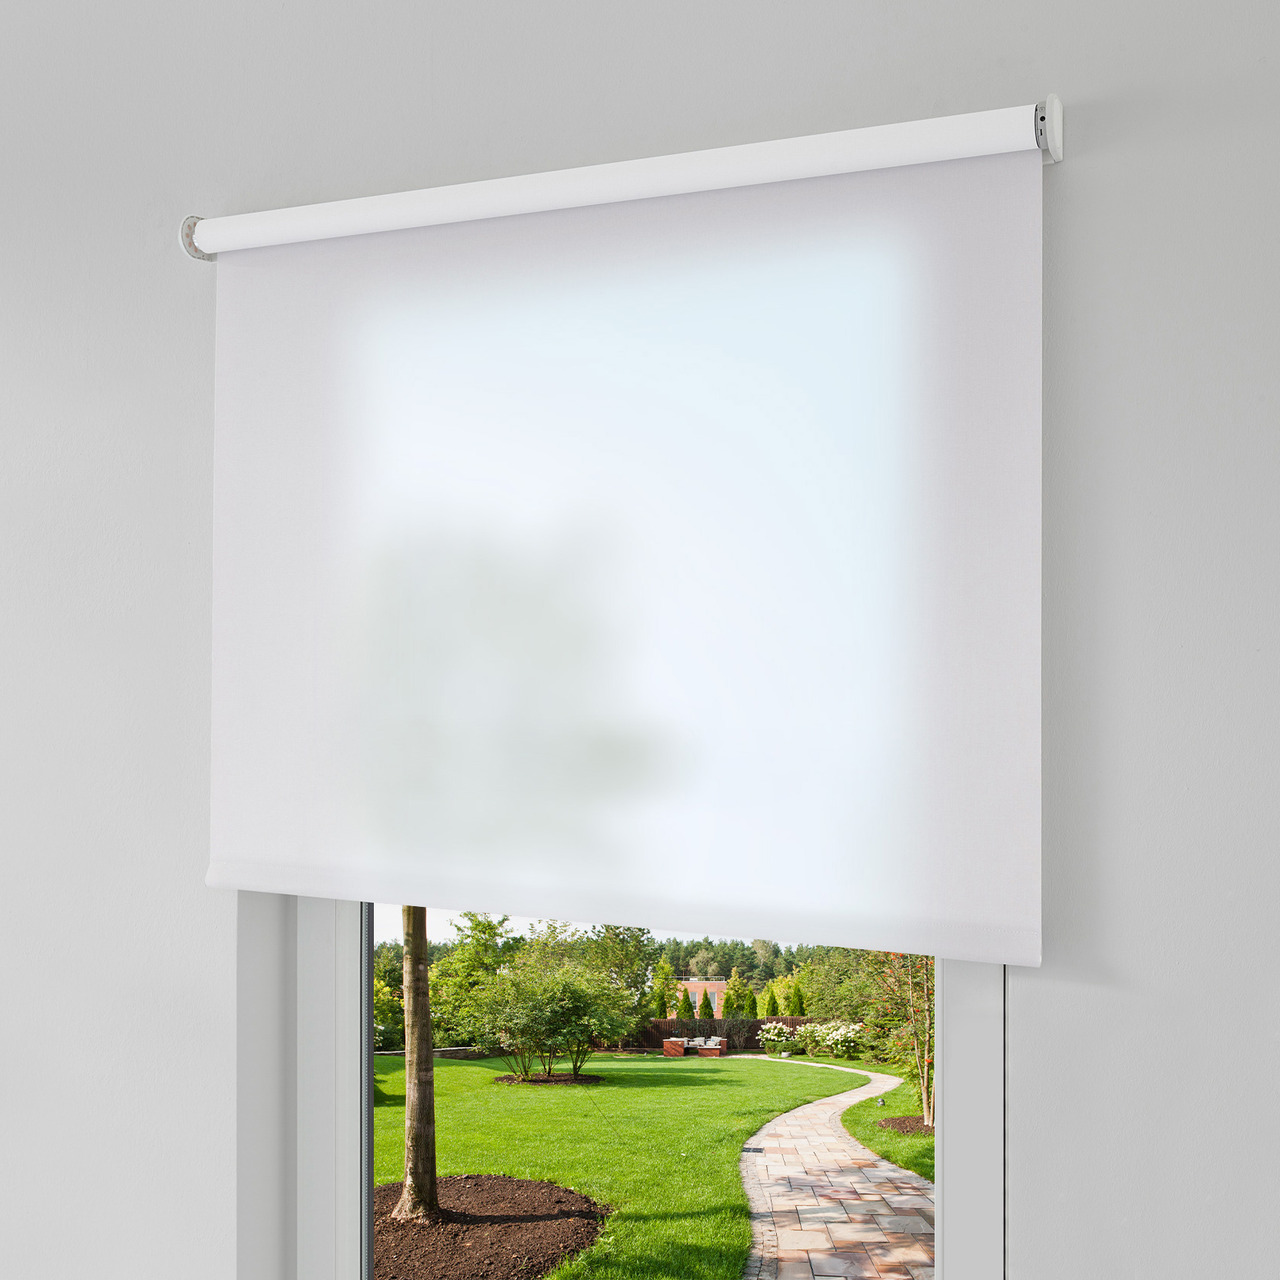 Erfal Smartcontrol Rollo by Homematic IP- 60 x 160 cm (B x H)- halbtransparent tageslicht weiss